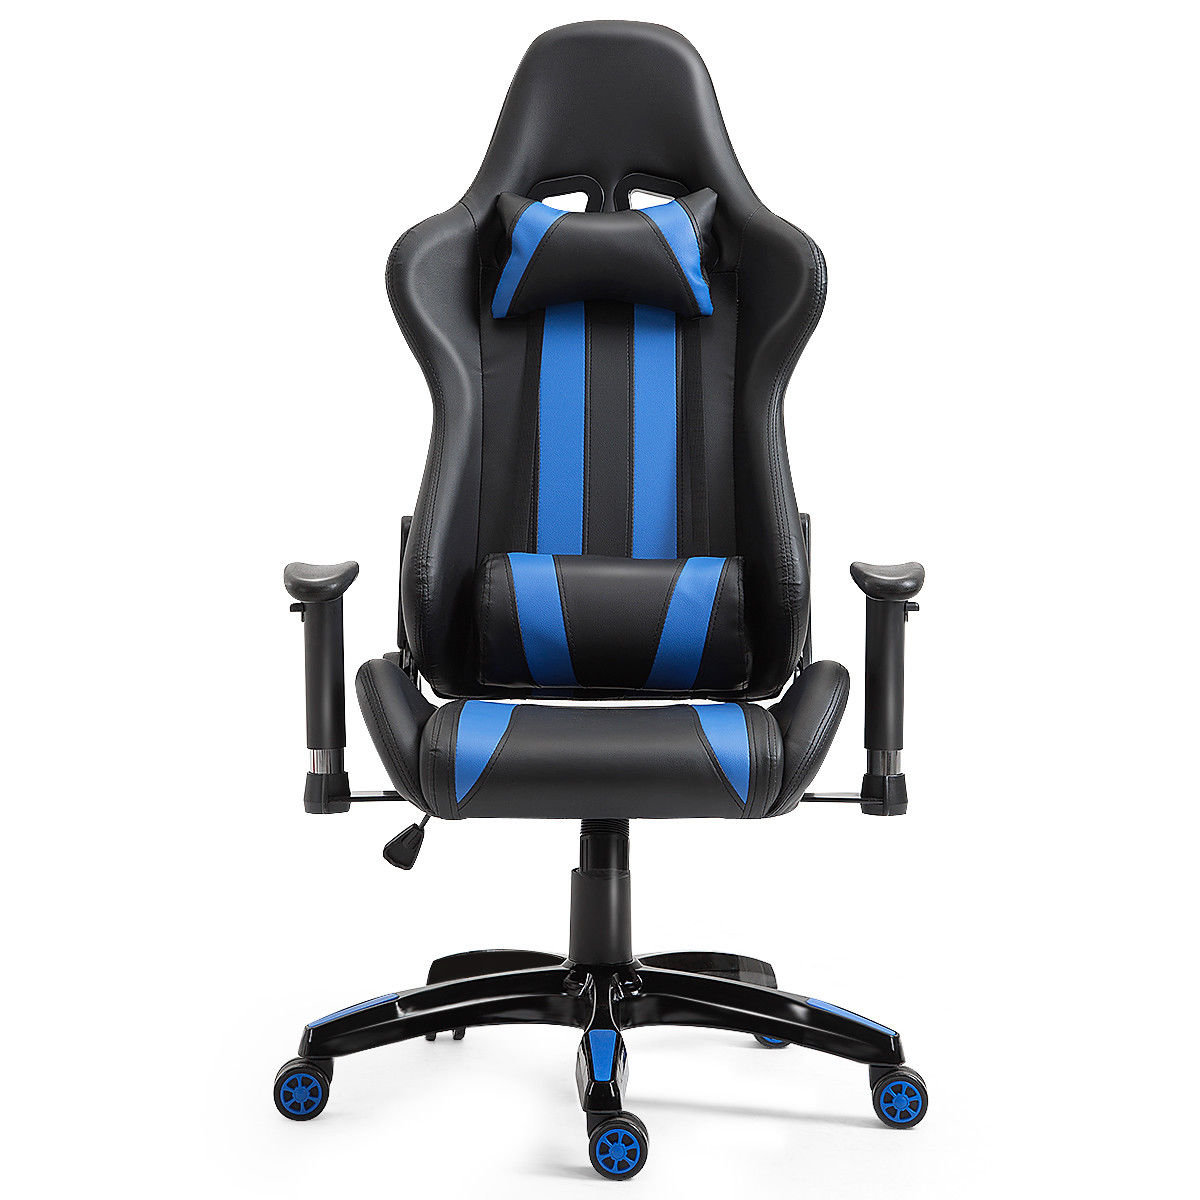 Costway Executive Racing Style High Back Reclining Chair Gaming Chair Office Computer (Black+Blue)